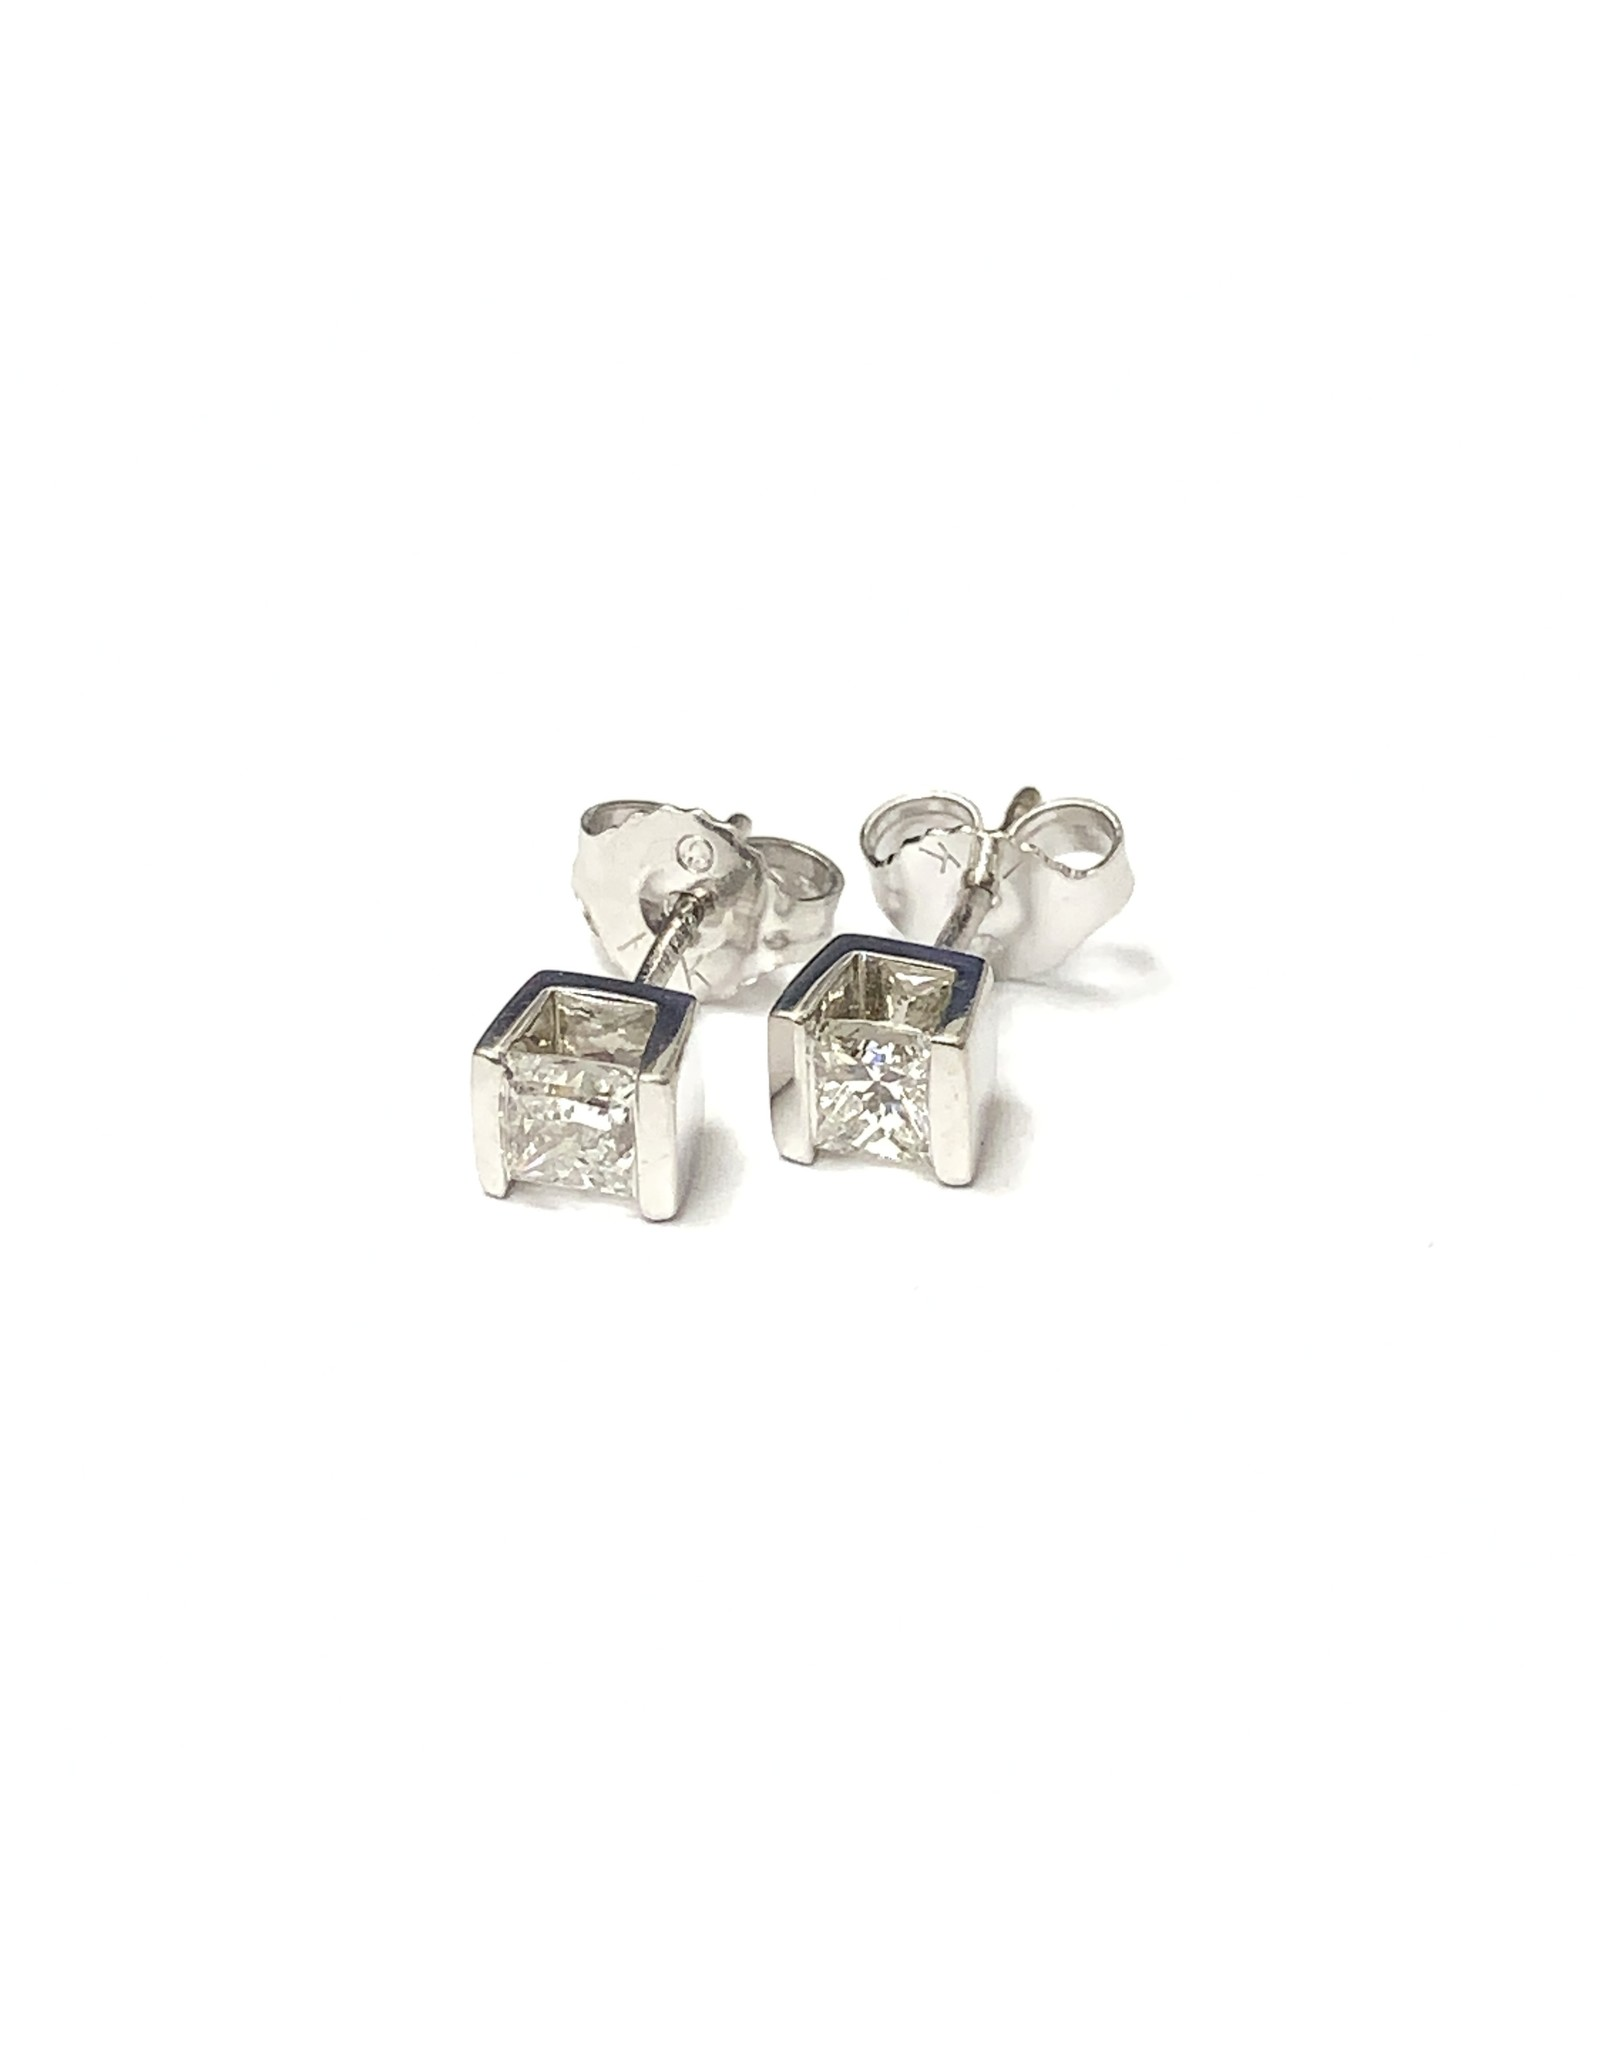 0.50ctw Princess Diamond Stud Earrings 14KW